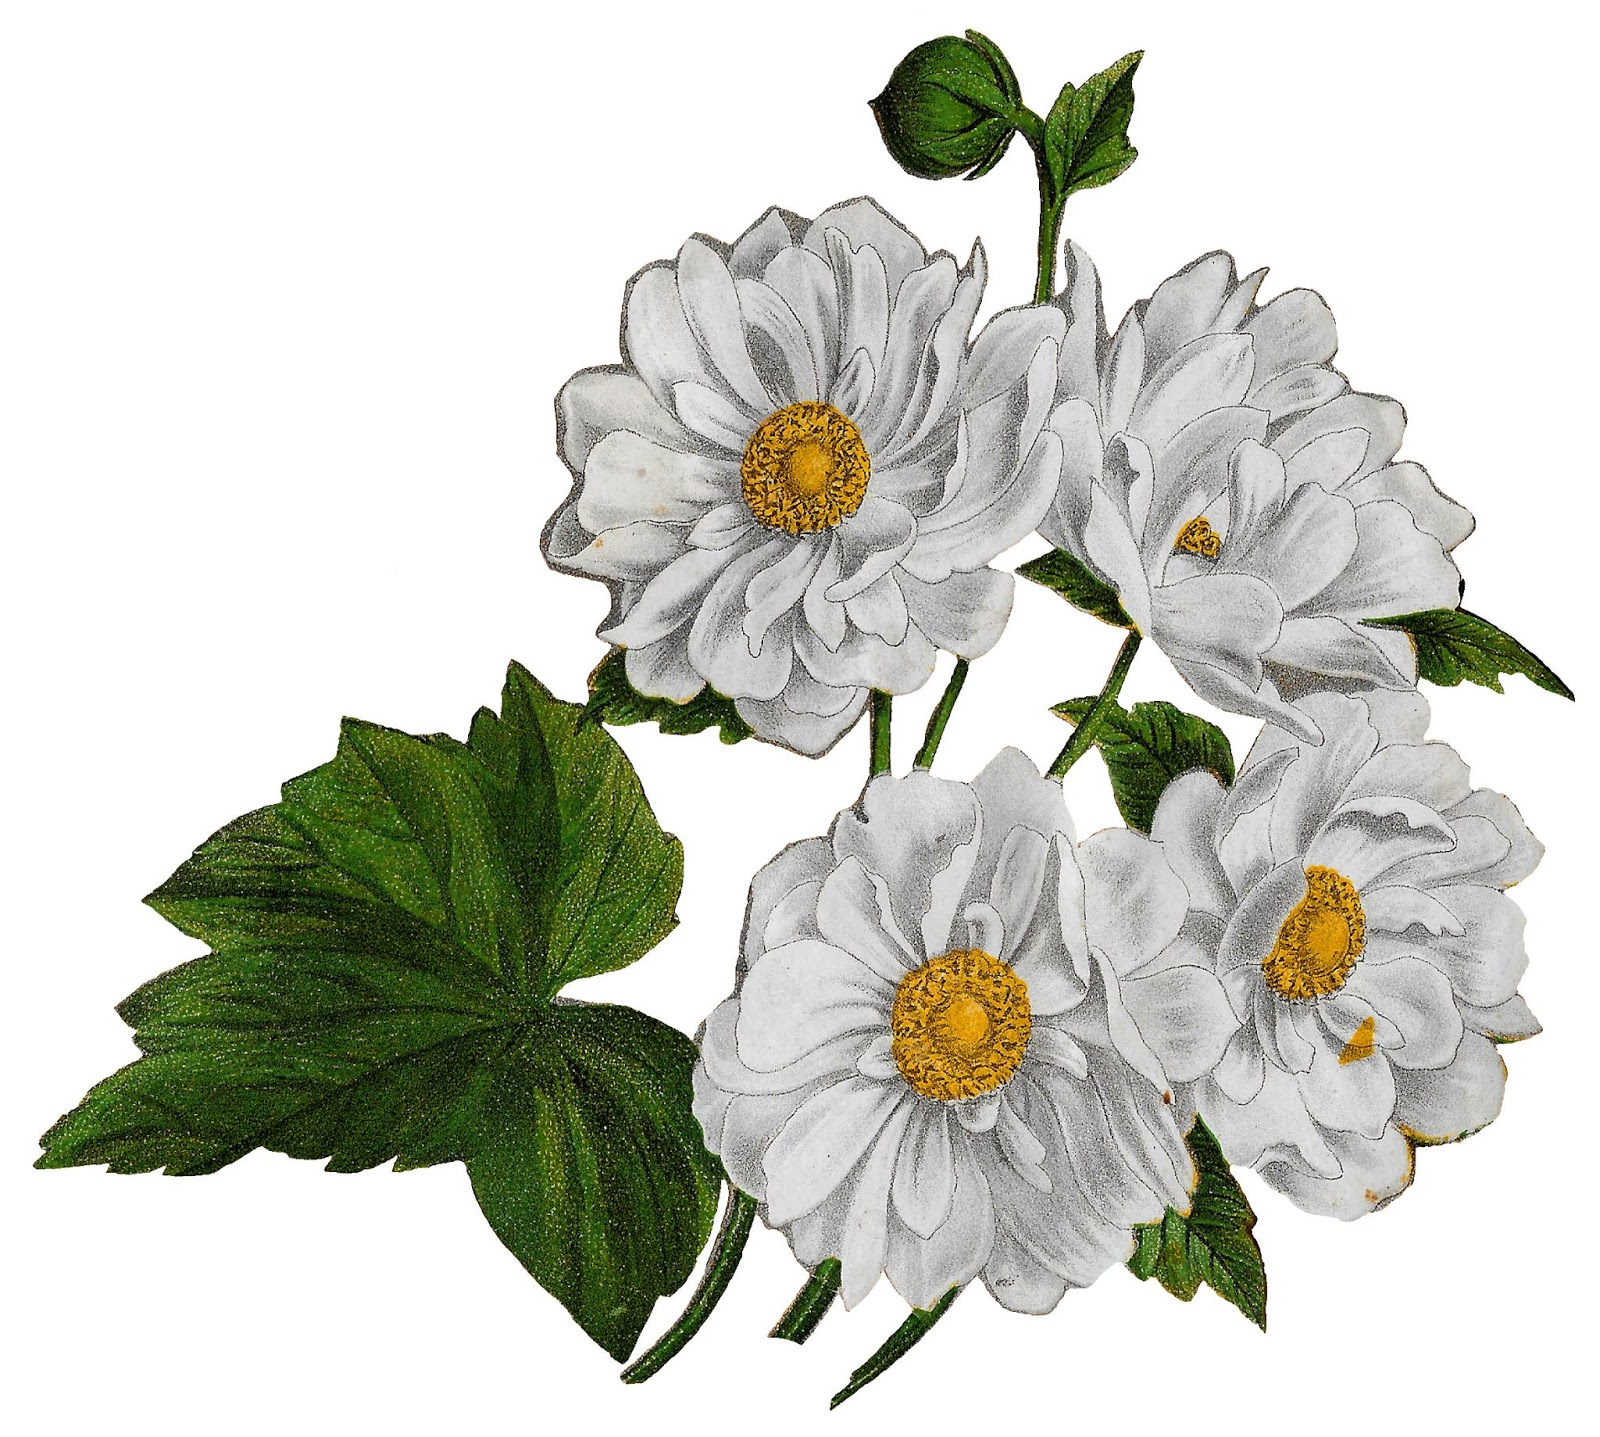 White anemone flower clipart clip art black and white download The Graphics Monarch: Printable Flower Anemone Floral Clip ... clip art black and white download